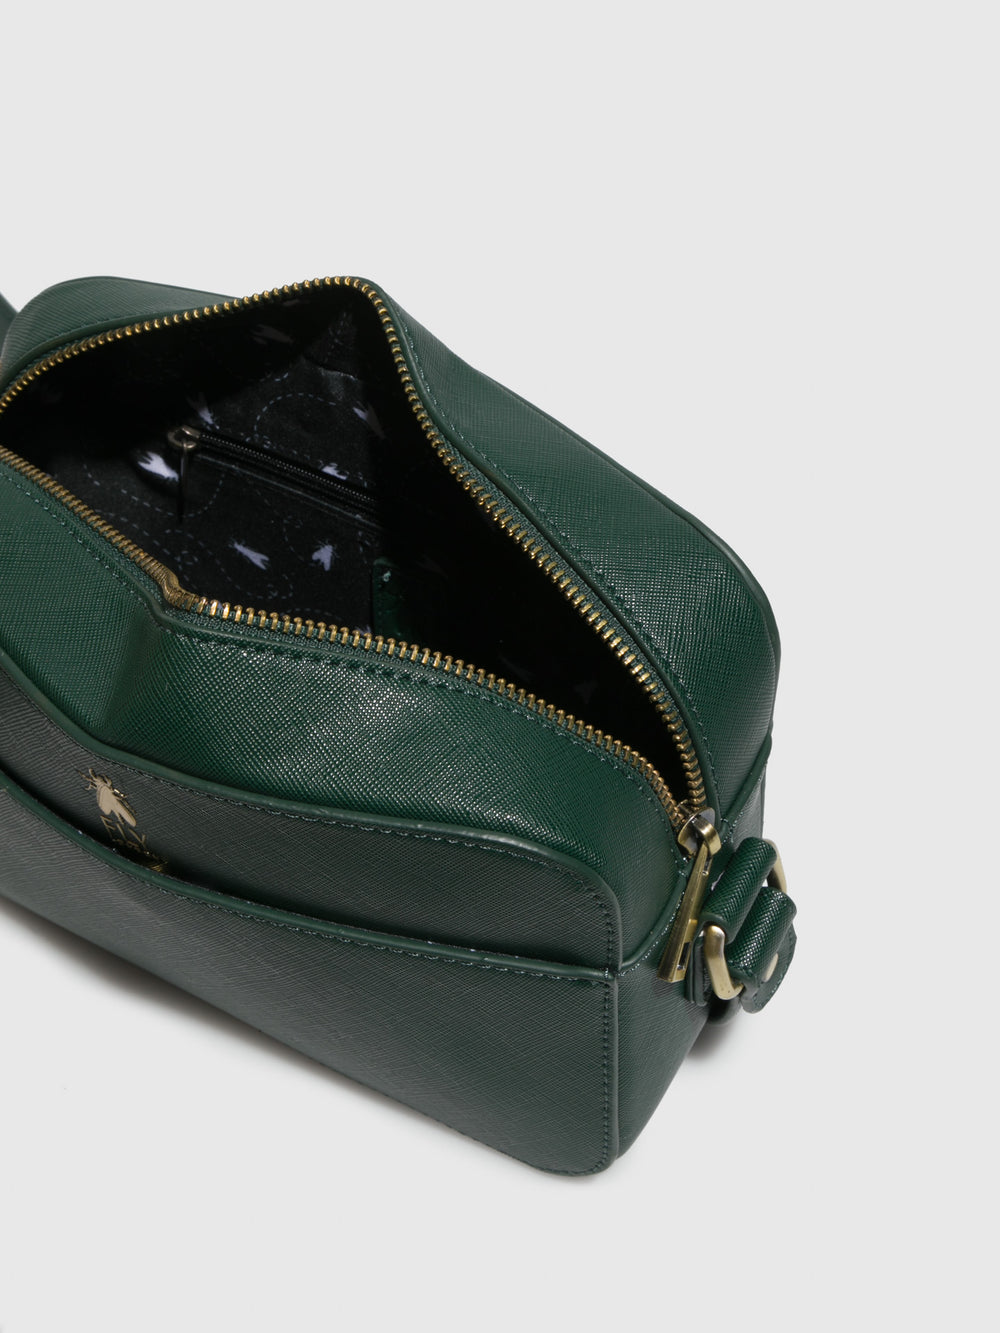 Shoulder Bags ARES692FLY PHOBOS DK GREEN